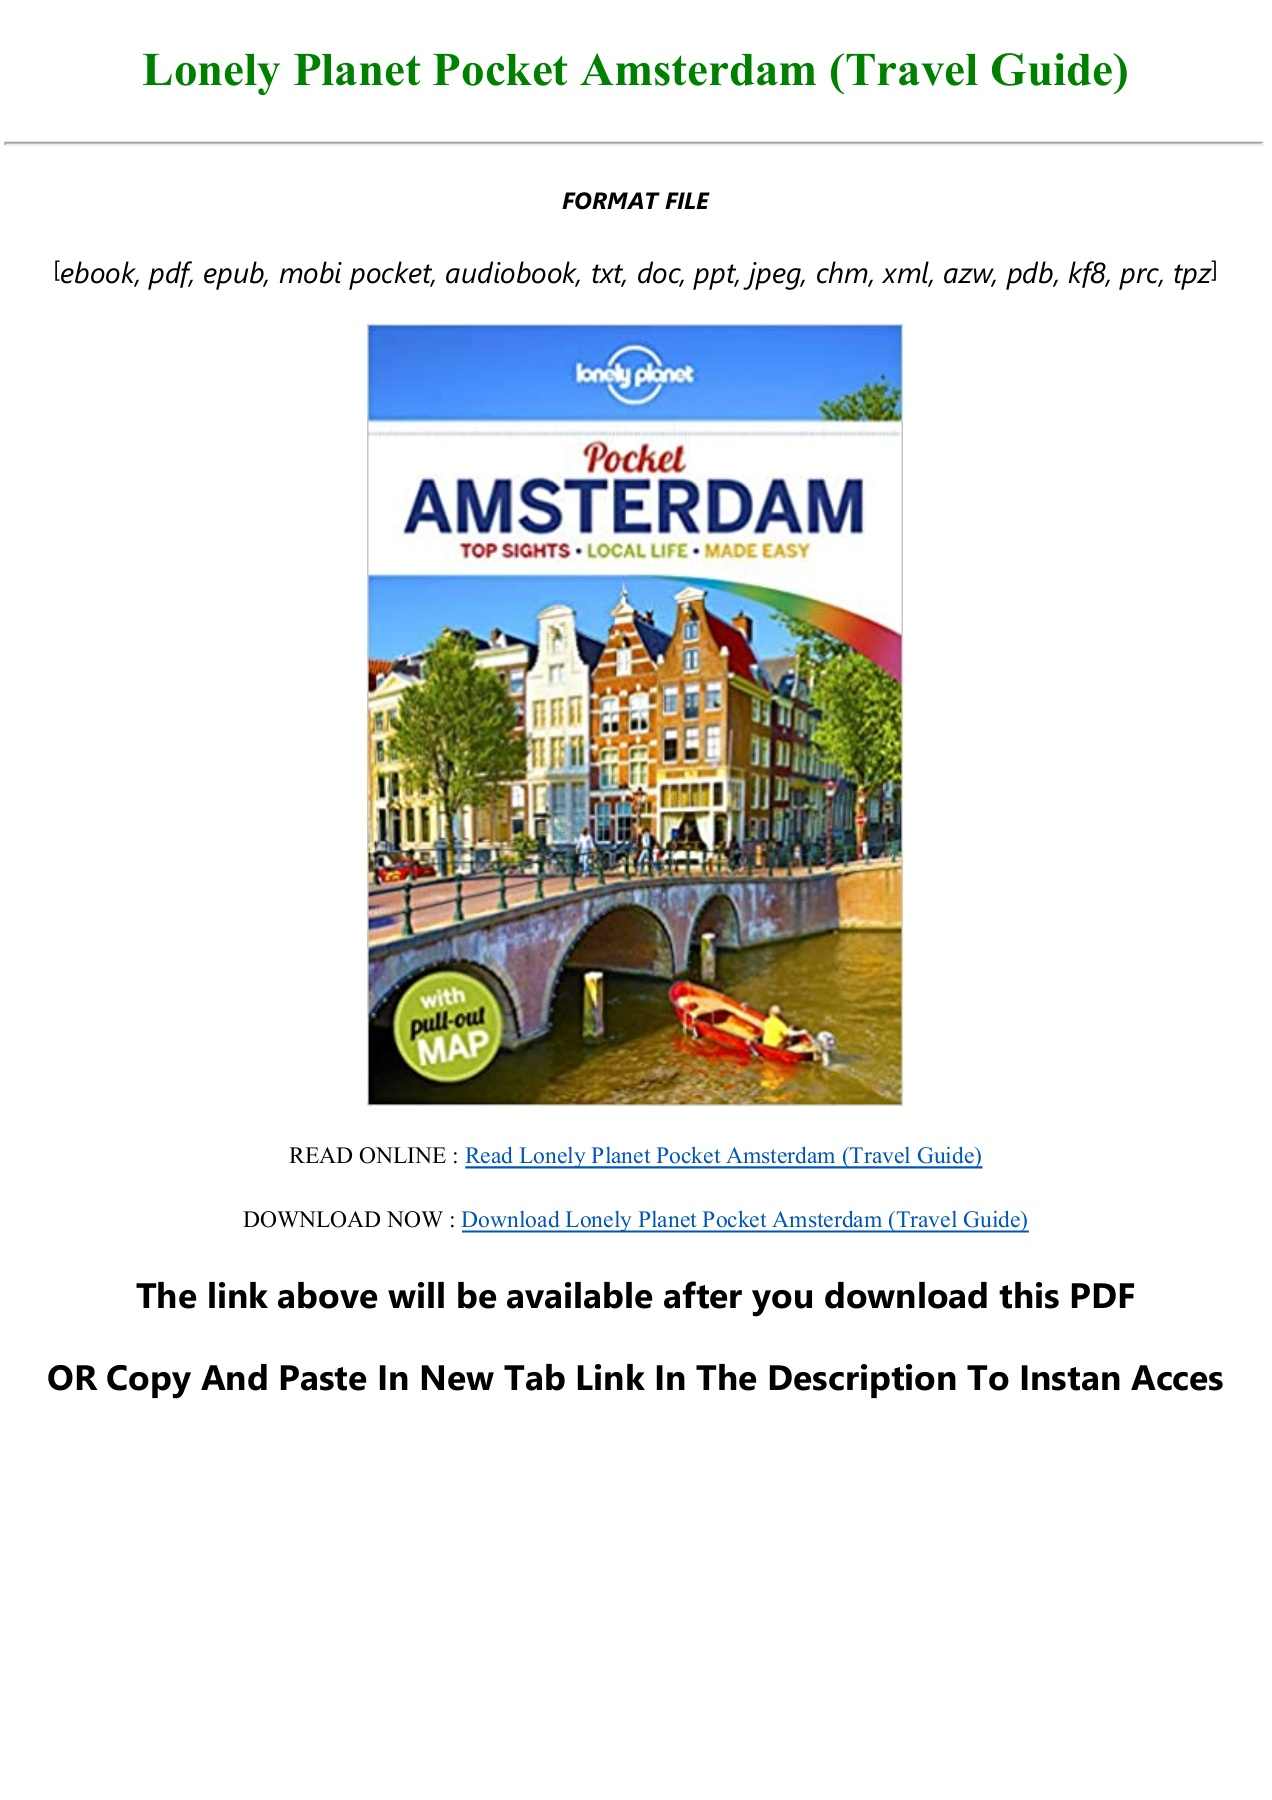 Pdf Download Lonely Planet Pocket Amsterdam Travel Guide Full Pdf Online Flip Ebook Pages 1 3 Anyflip Anyflip